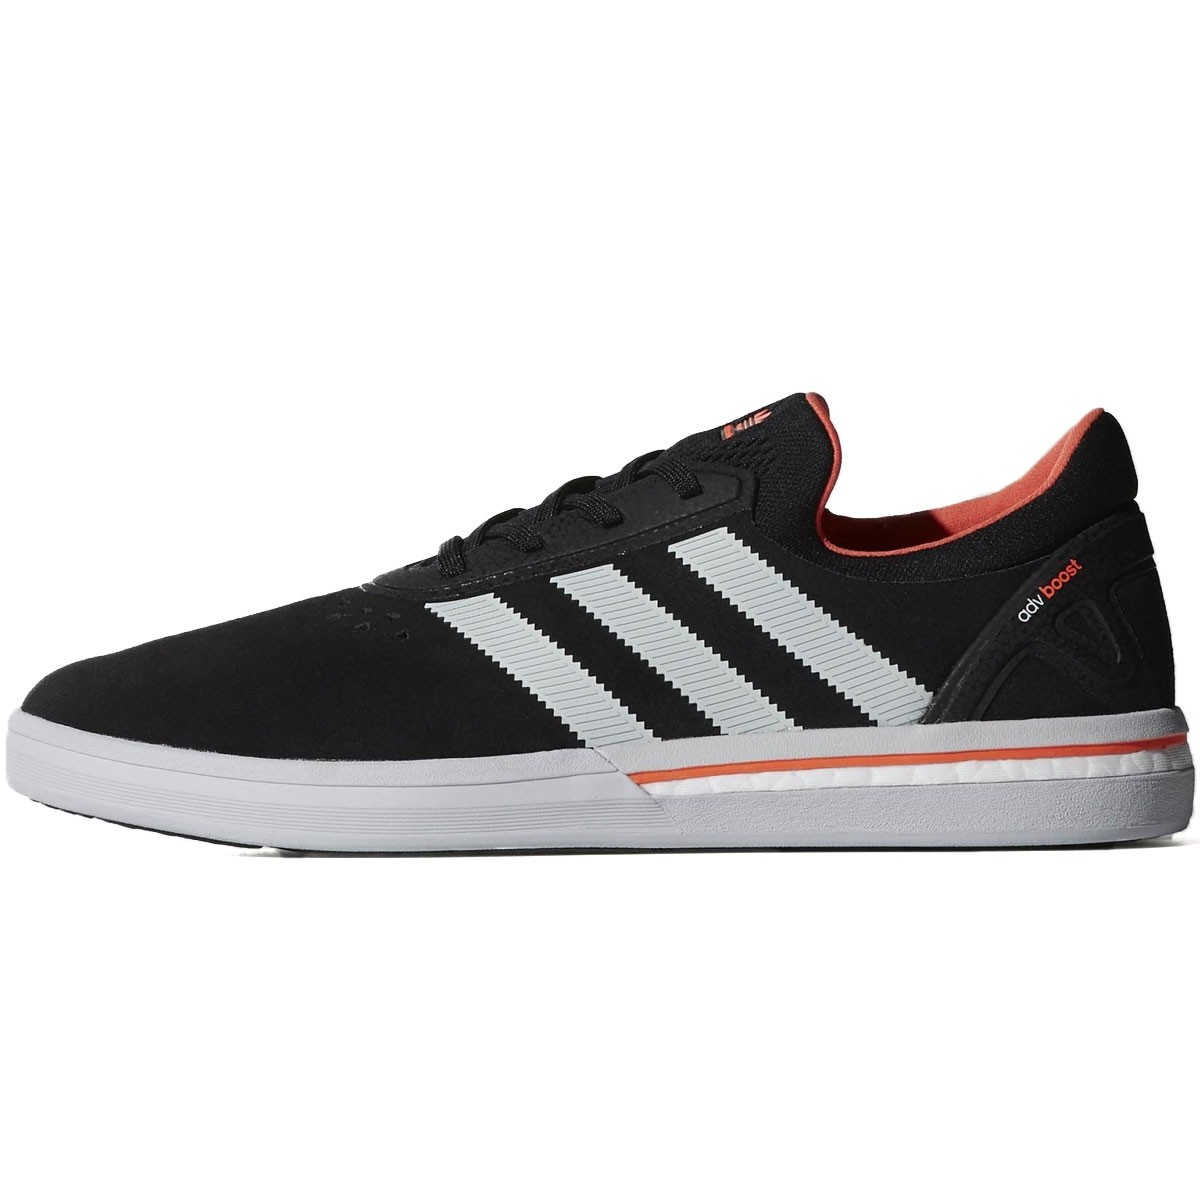 huge discount 0e194 1fde3 Adidas Adv Boost Shoes - Black Clear Grey Solar Red - 8.0